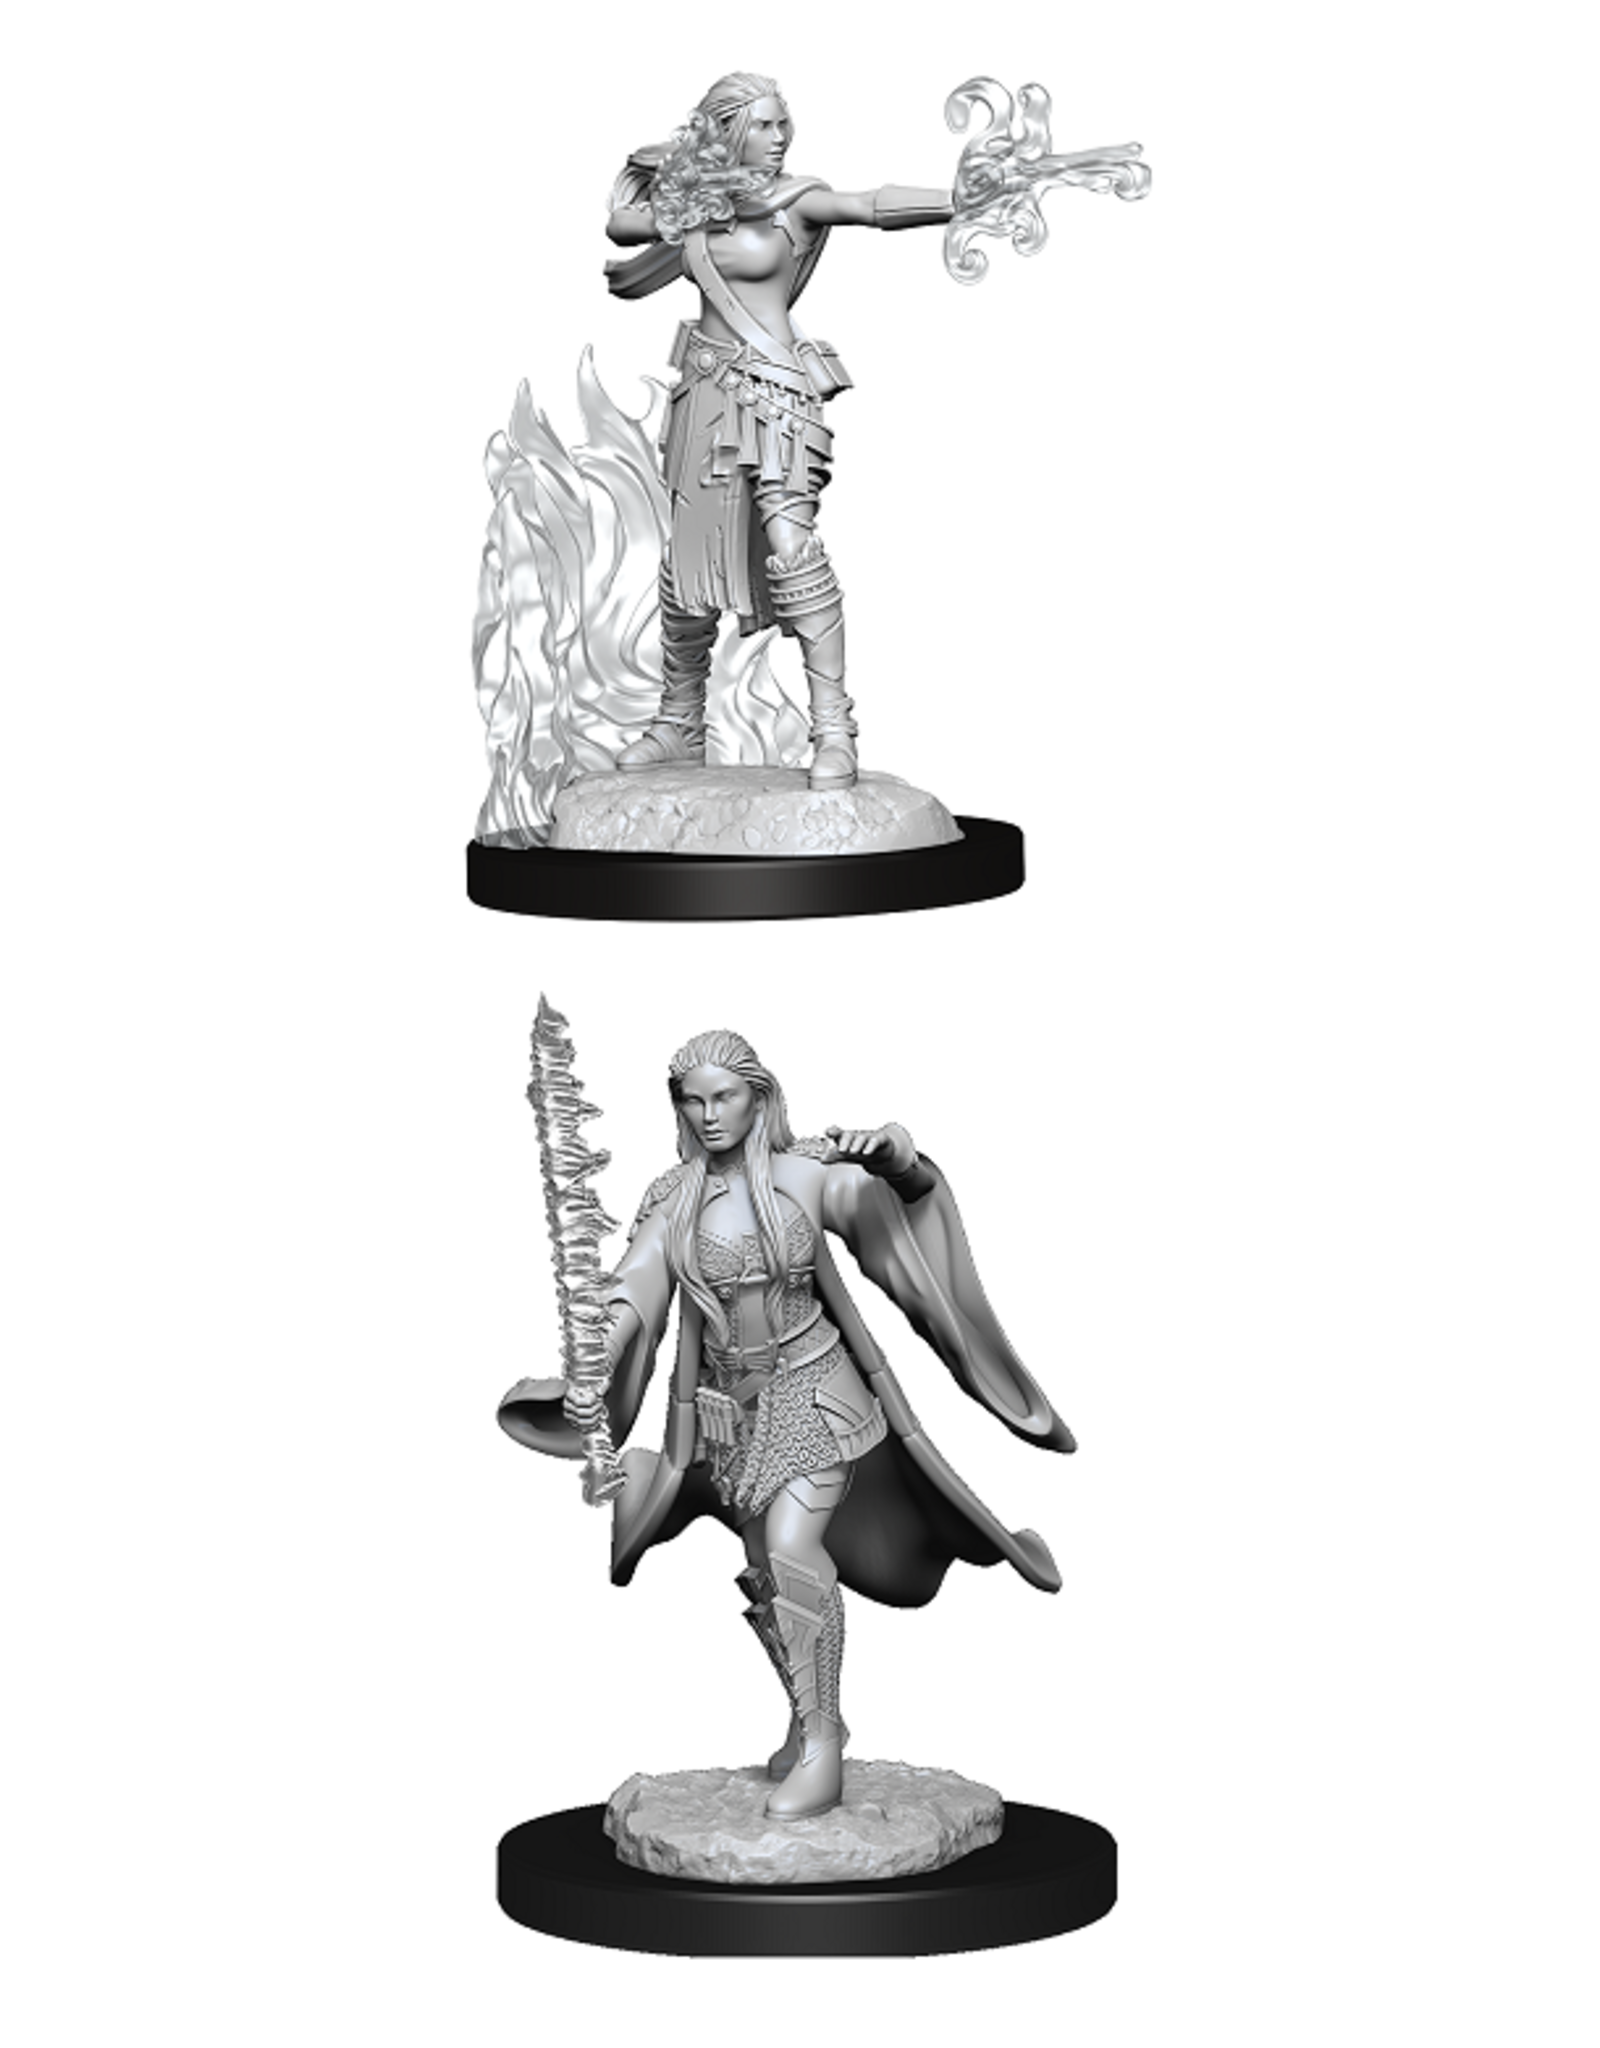 Wizards of the Coast Dungeons and Dragons Unpainted Minis Wave 13 - Warlock/Sorcerer Female